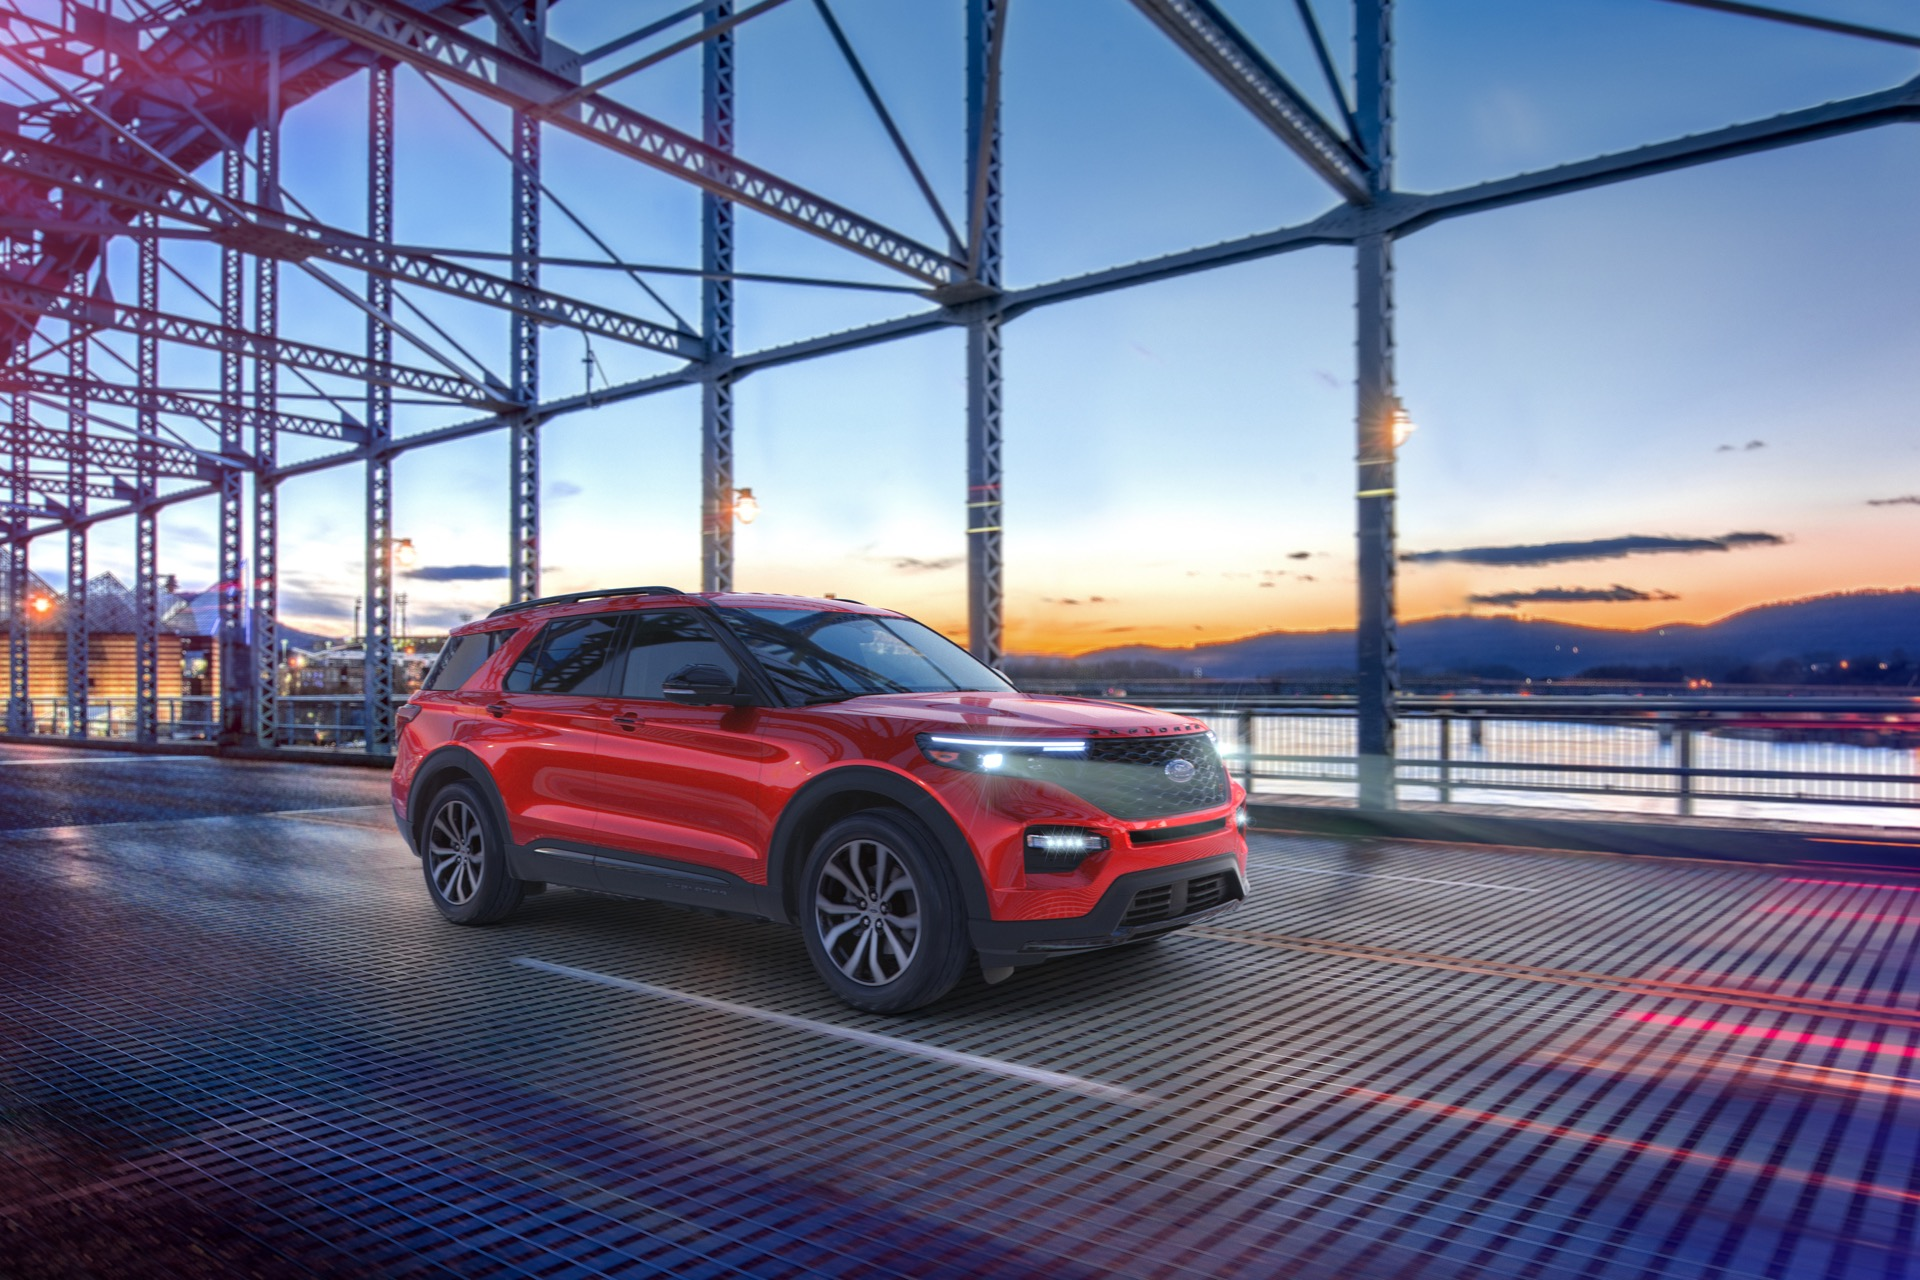 2021 Ford Explorer Enthusiast ST: Silly name signifies more performance for less money